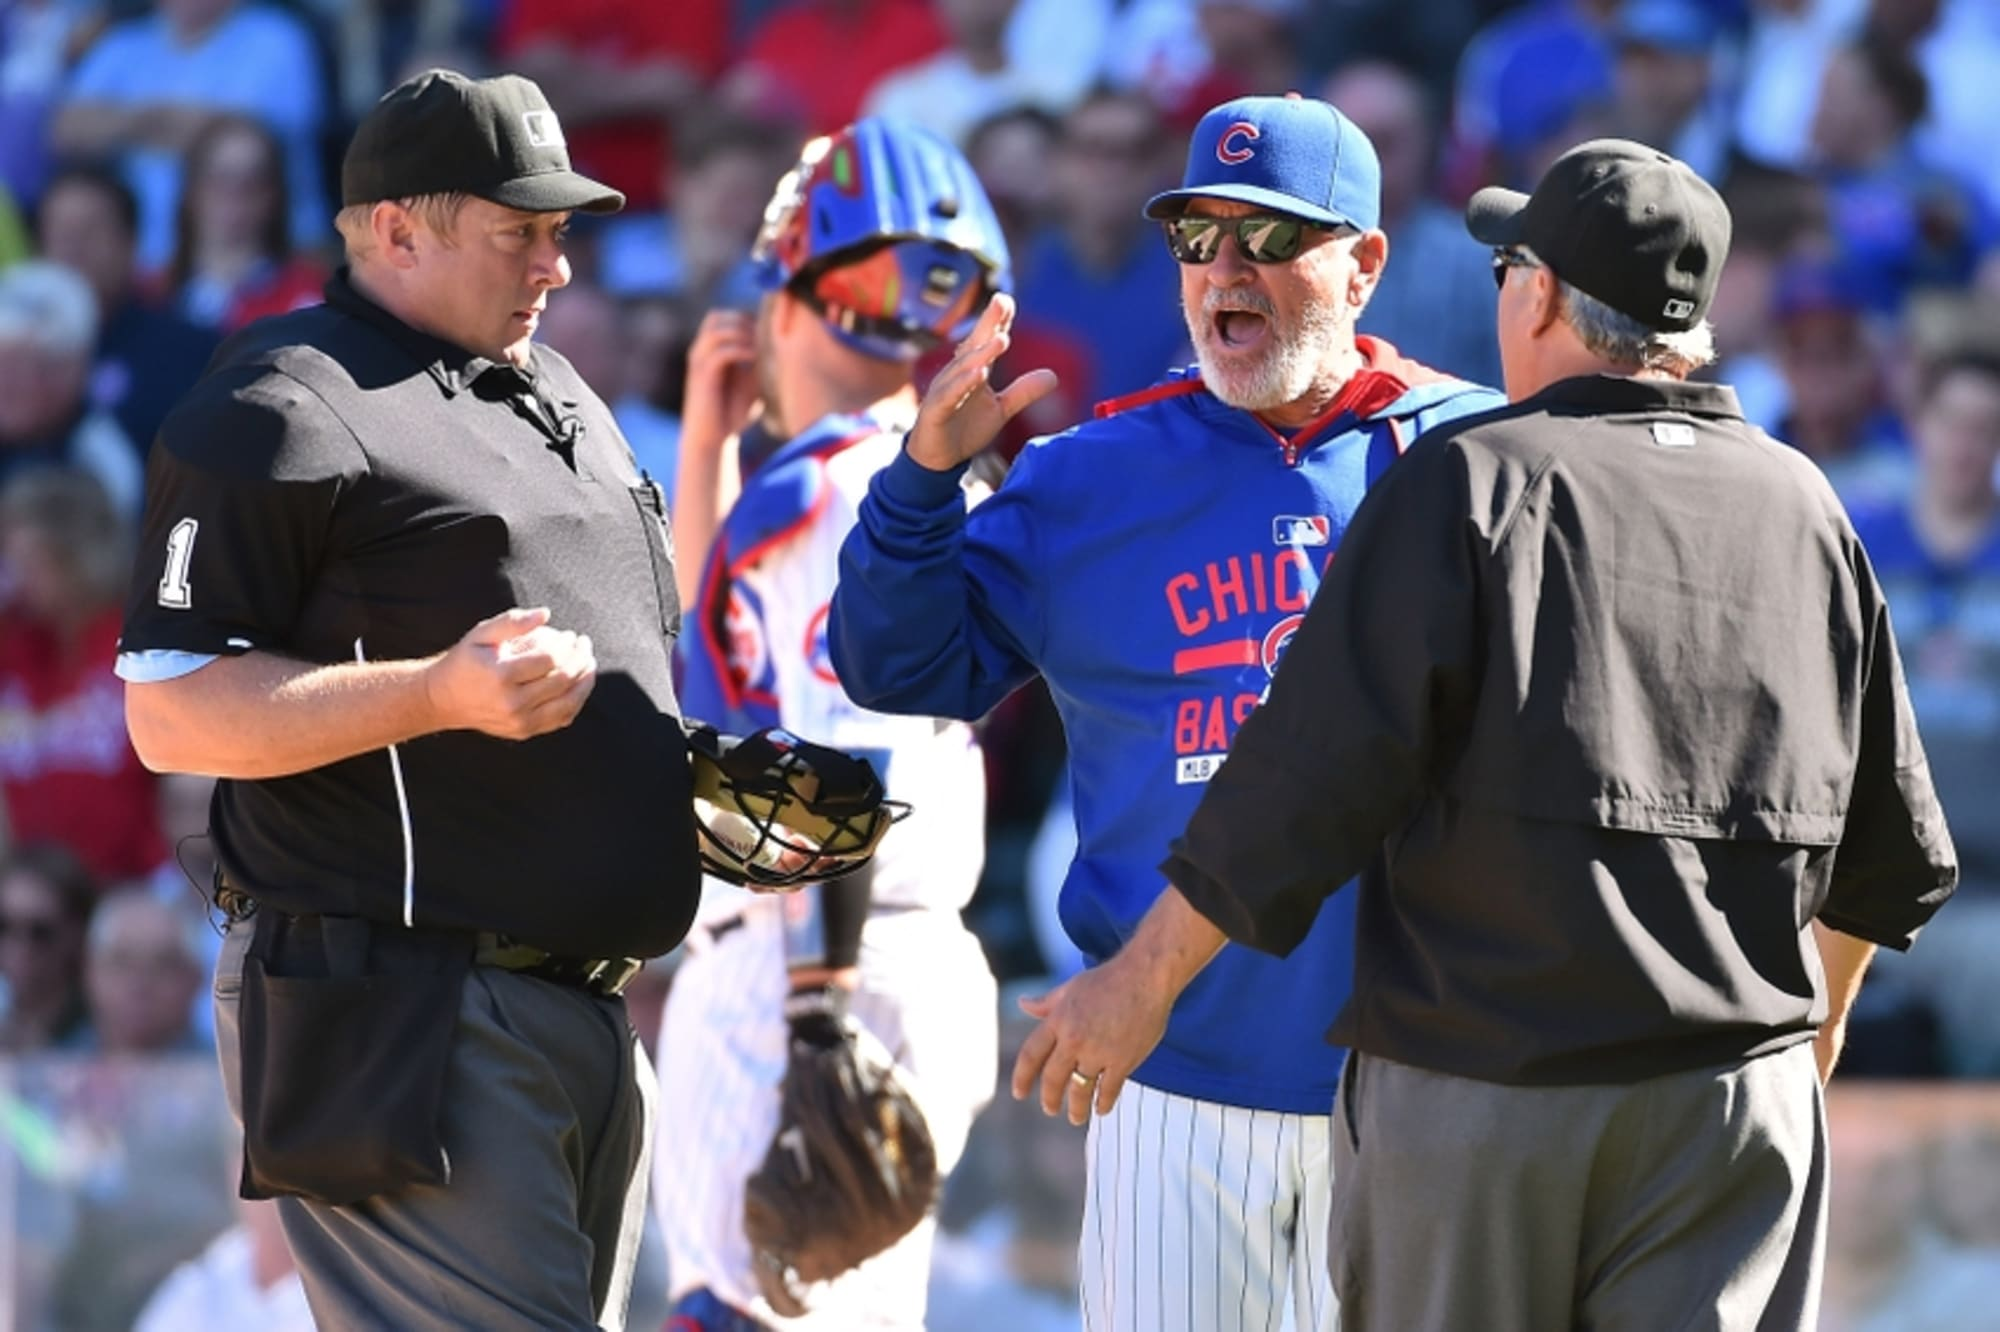 Crib Mobile Usa Chicago Cubs Mlb Rule Changes Could Be Coming